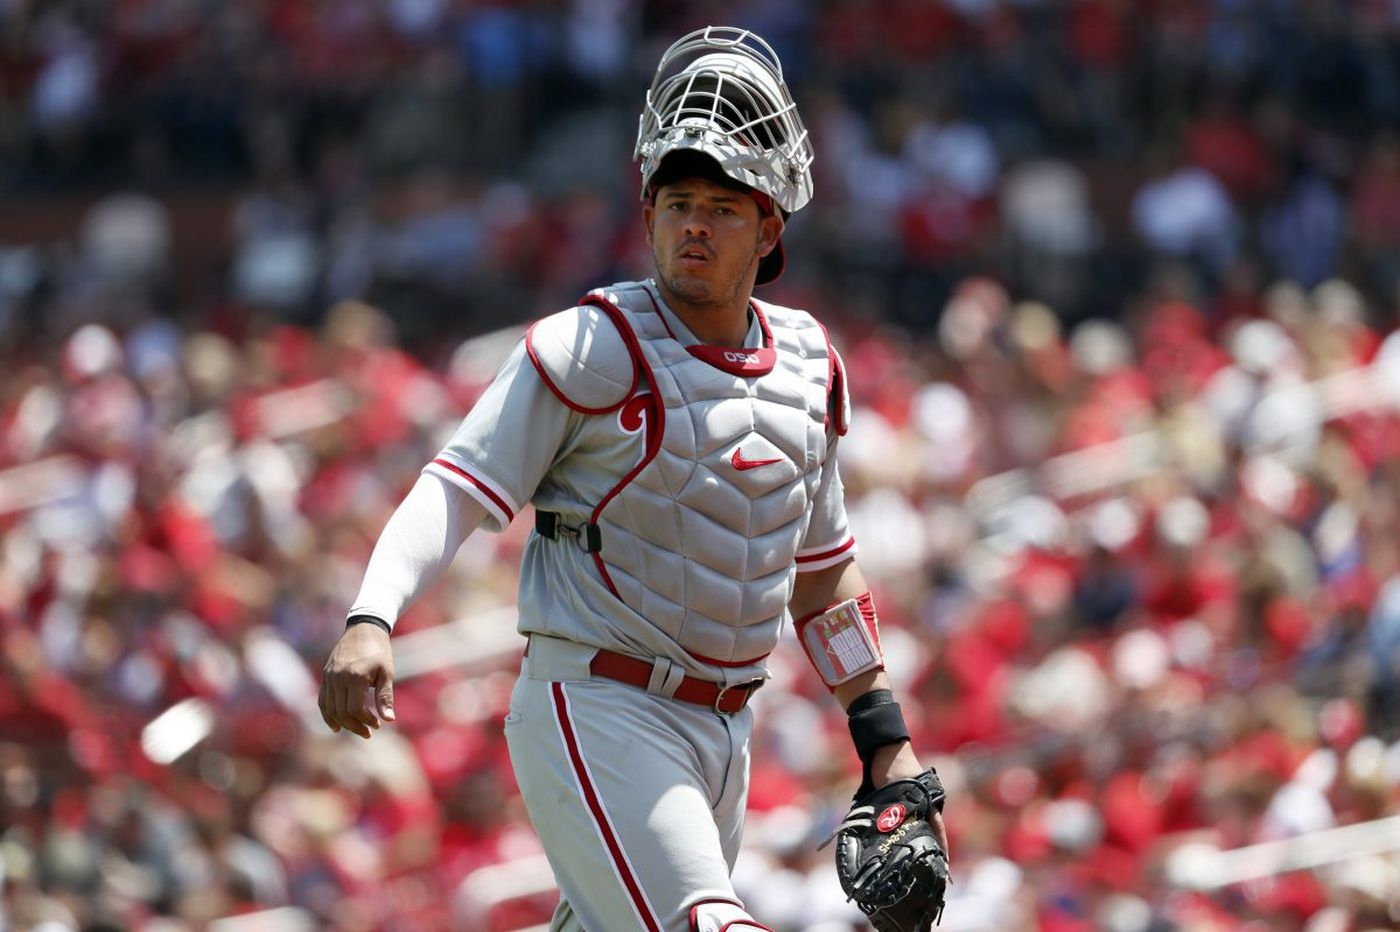 Jorge Alfaro channels Pudge Rodriguez as Phillies take Round 1 from Braves | Extra Innings